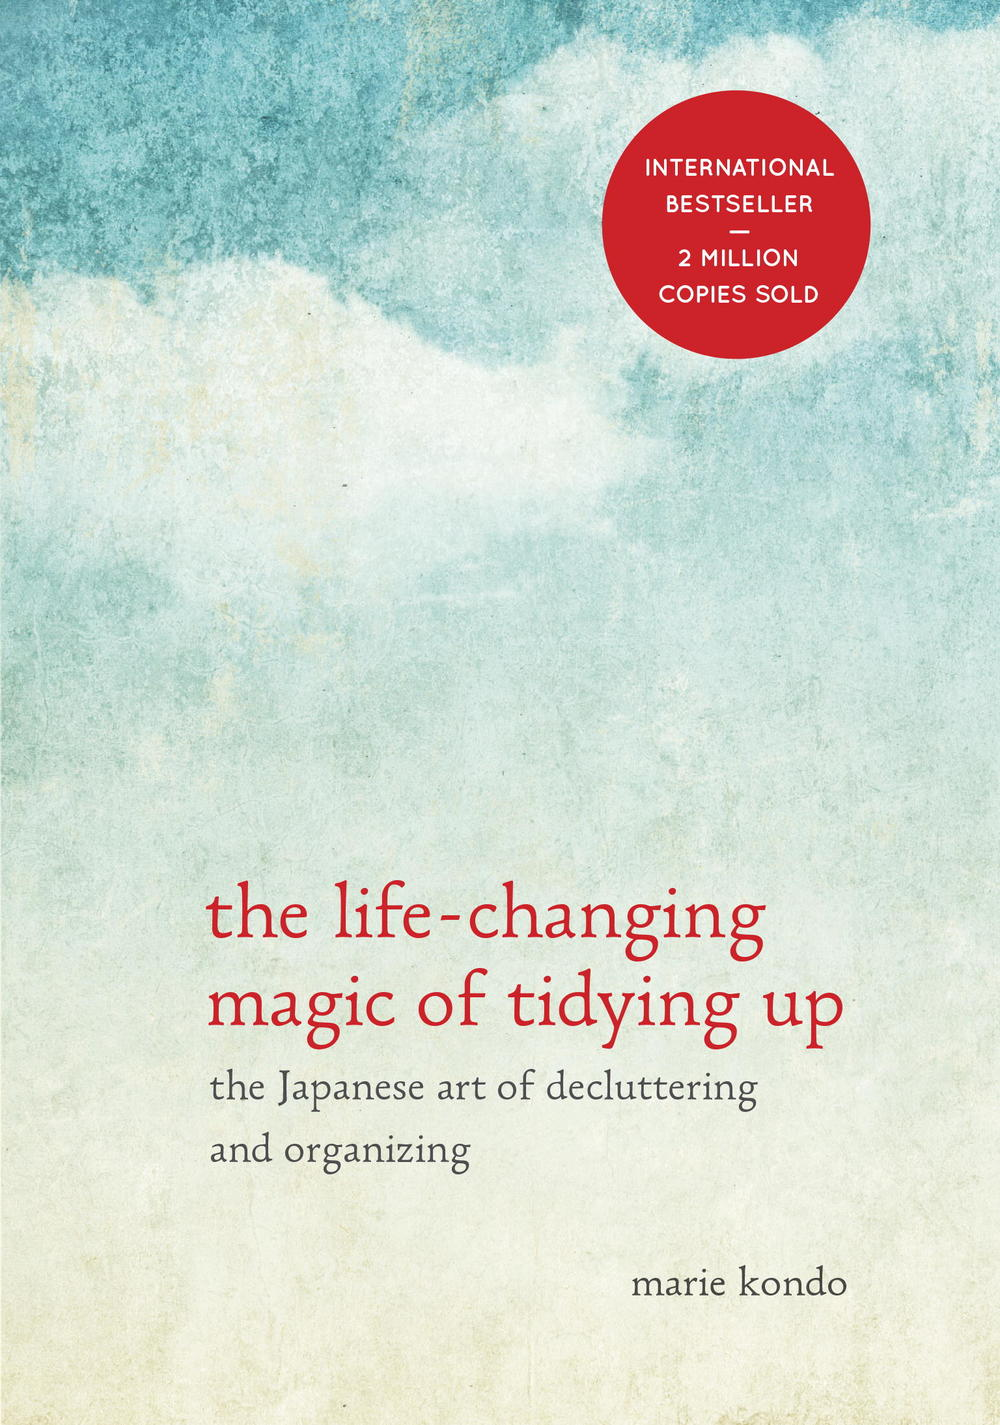 The Art of Tidying Up » By. Marie Kondo  This is a new addition to my library lent to me by a co-worker. It discusses how you can tidy up by cleaning out in one swoop. So far I haven't gotten far enough to begin overhauling my own room, but it is only a matter of time!